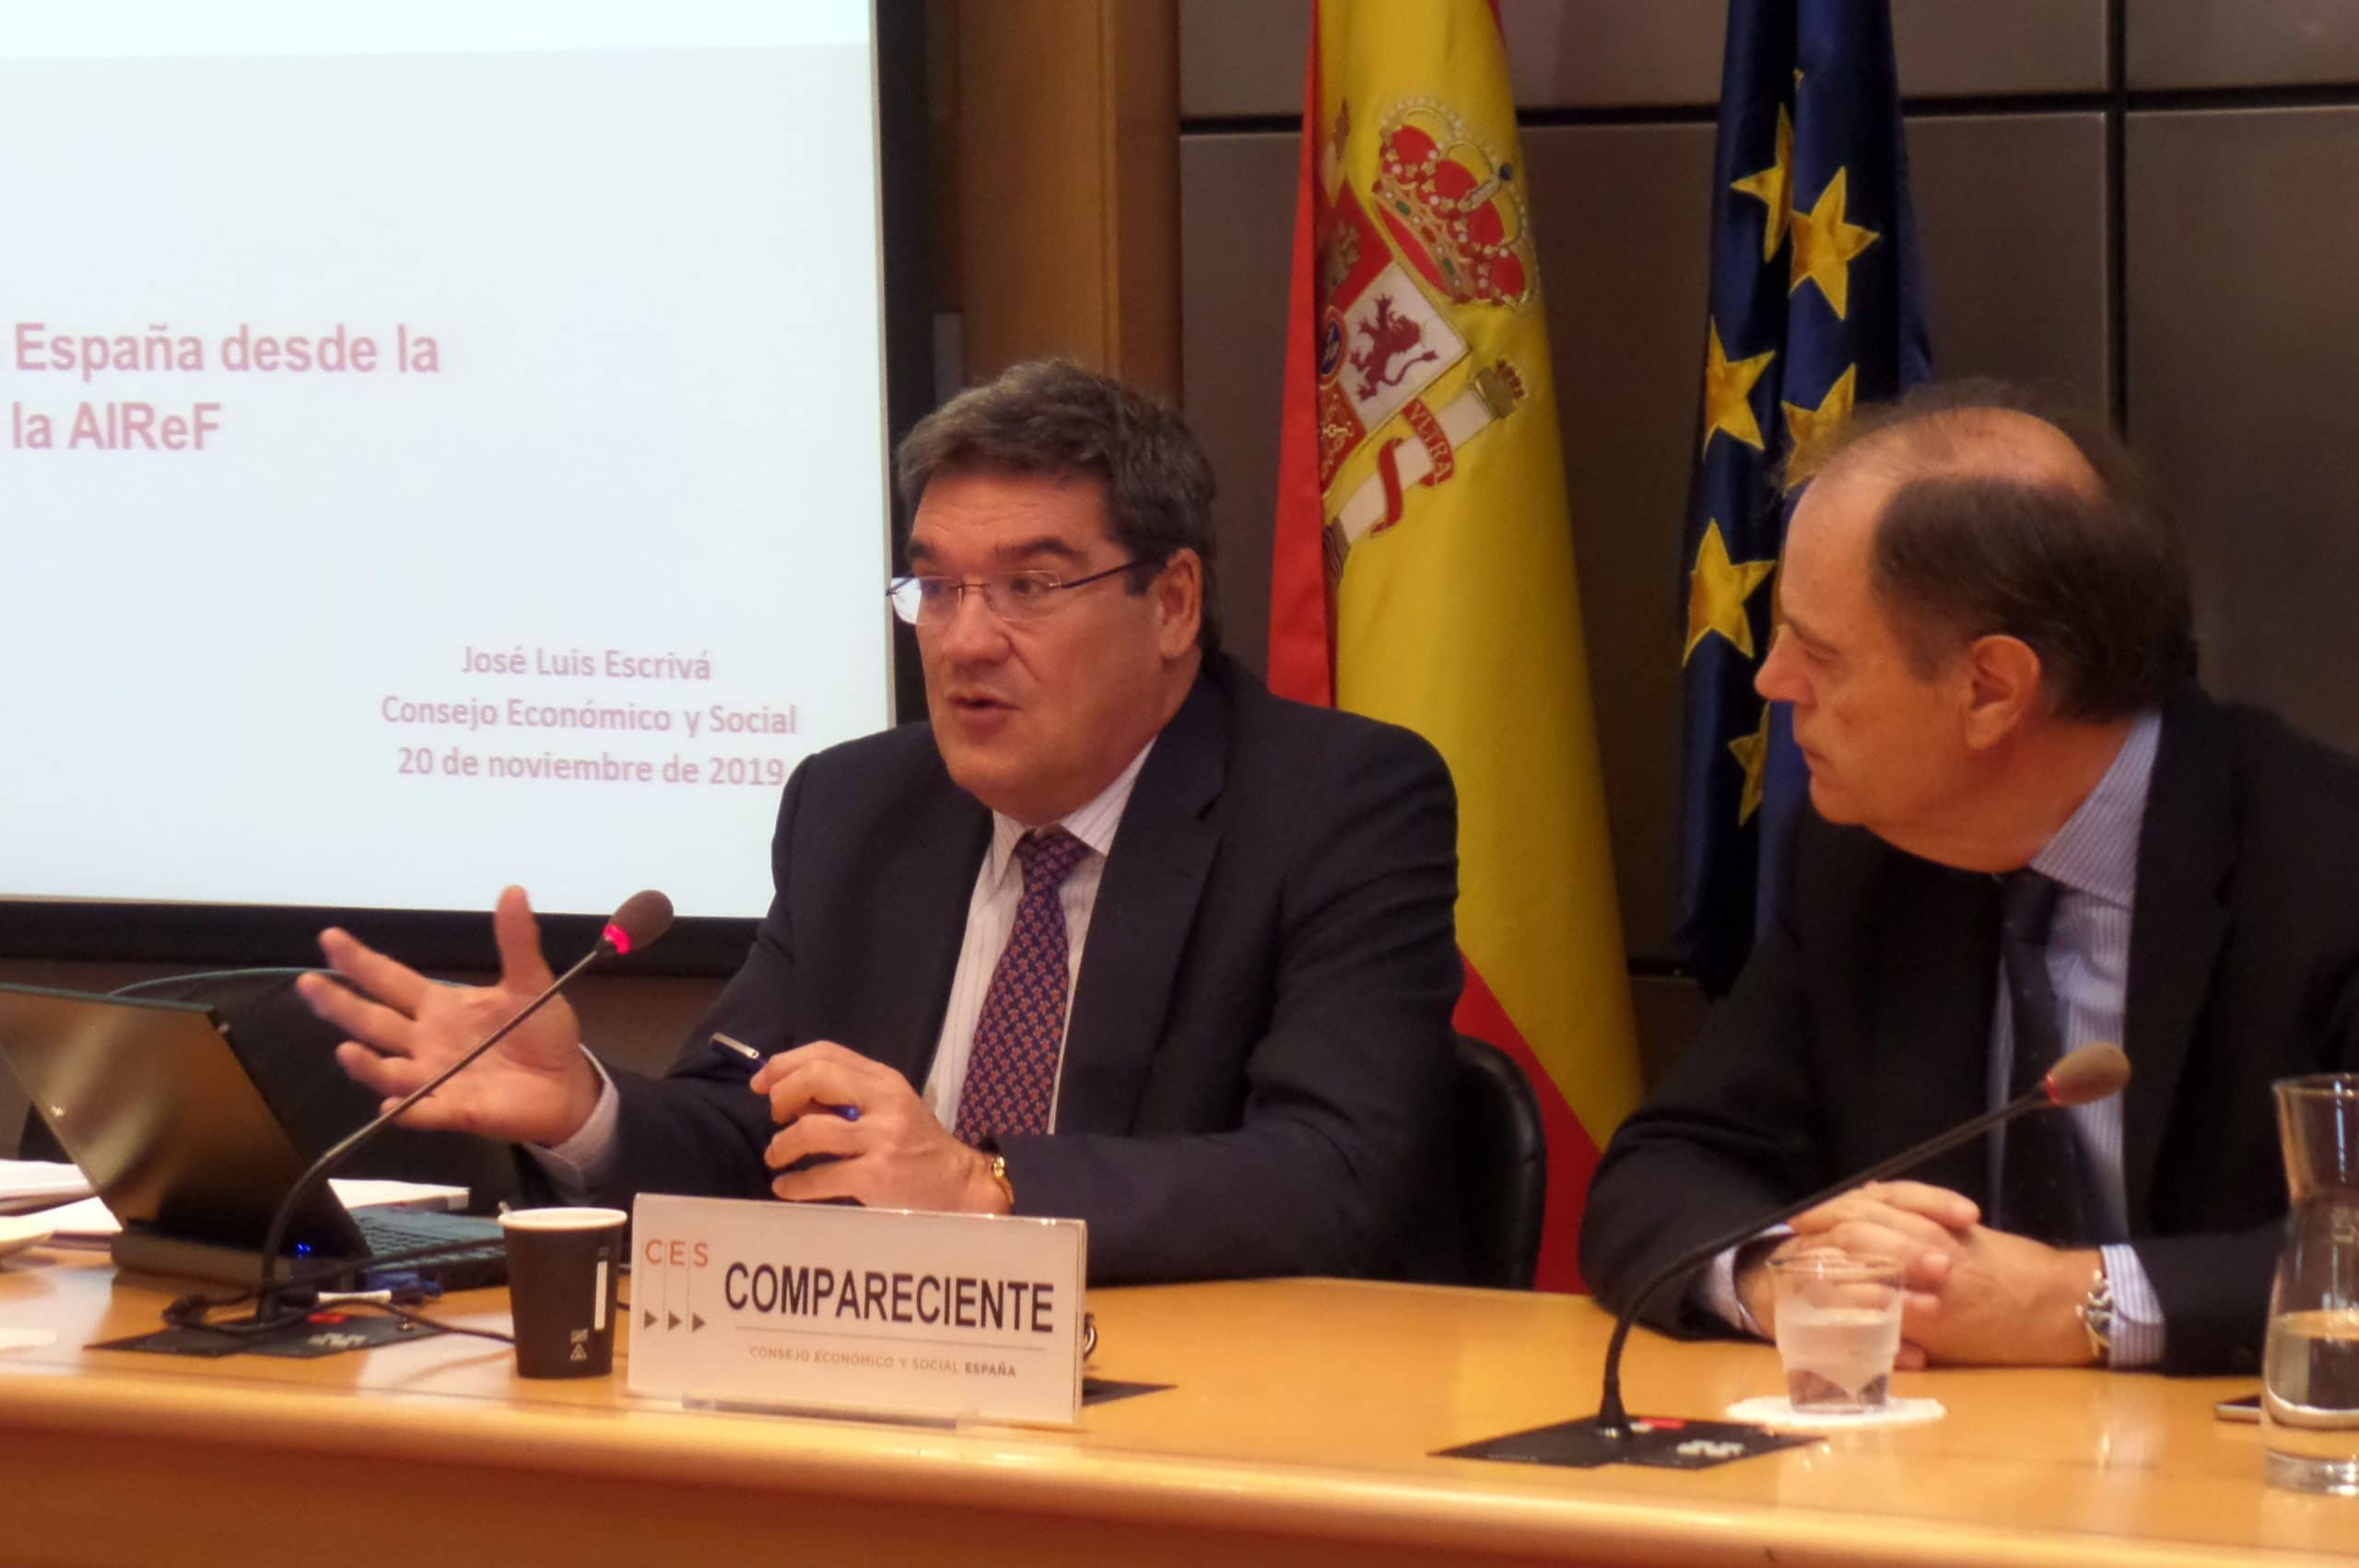 José Luis Escrivá at the Economic and Social Council